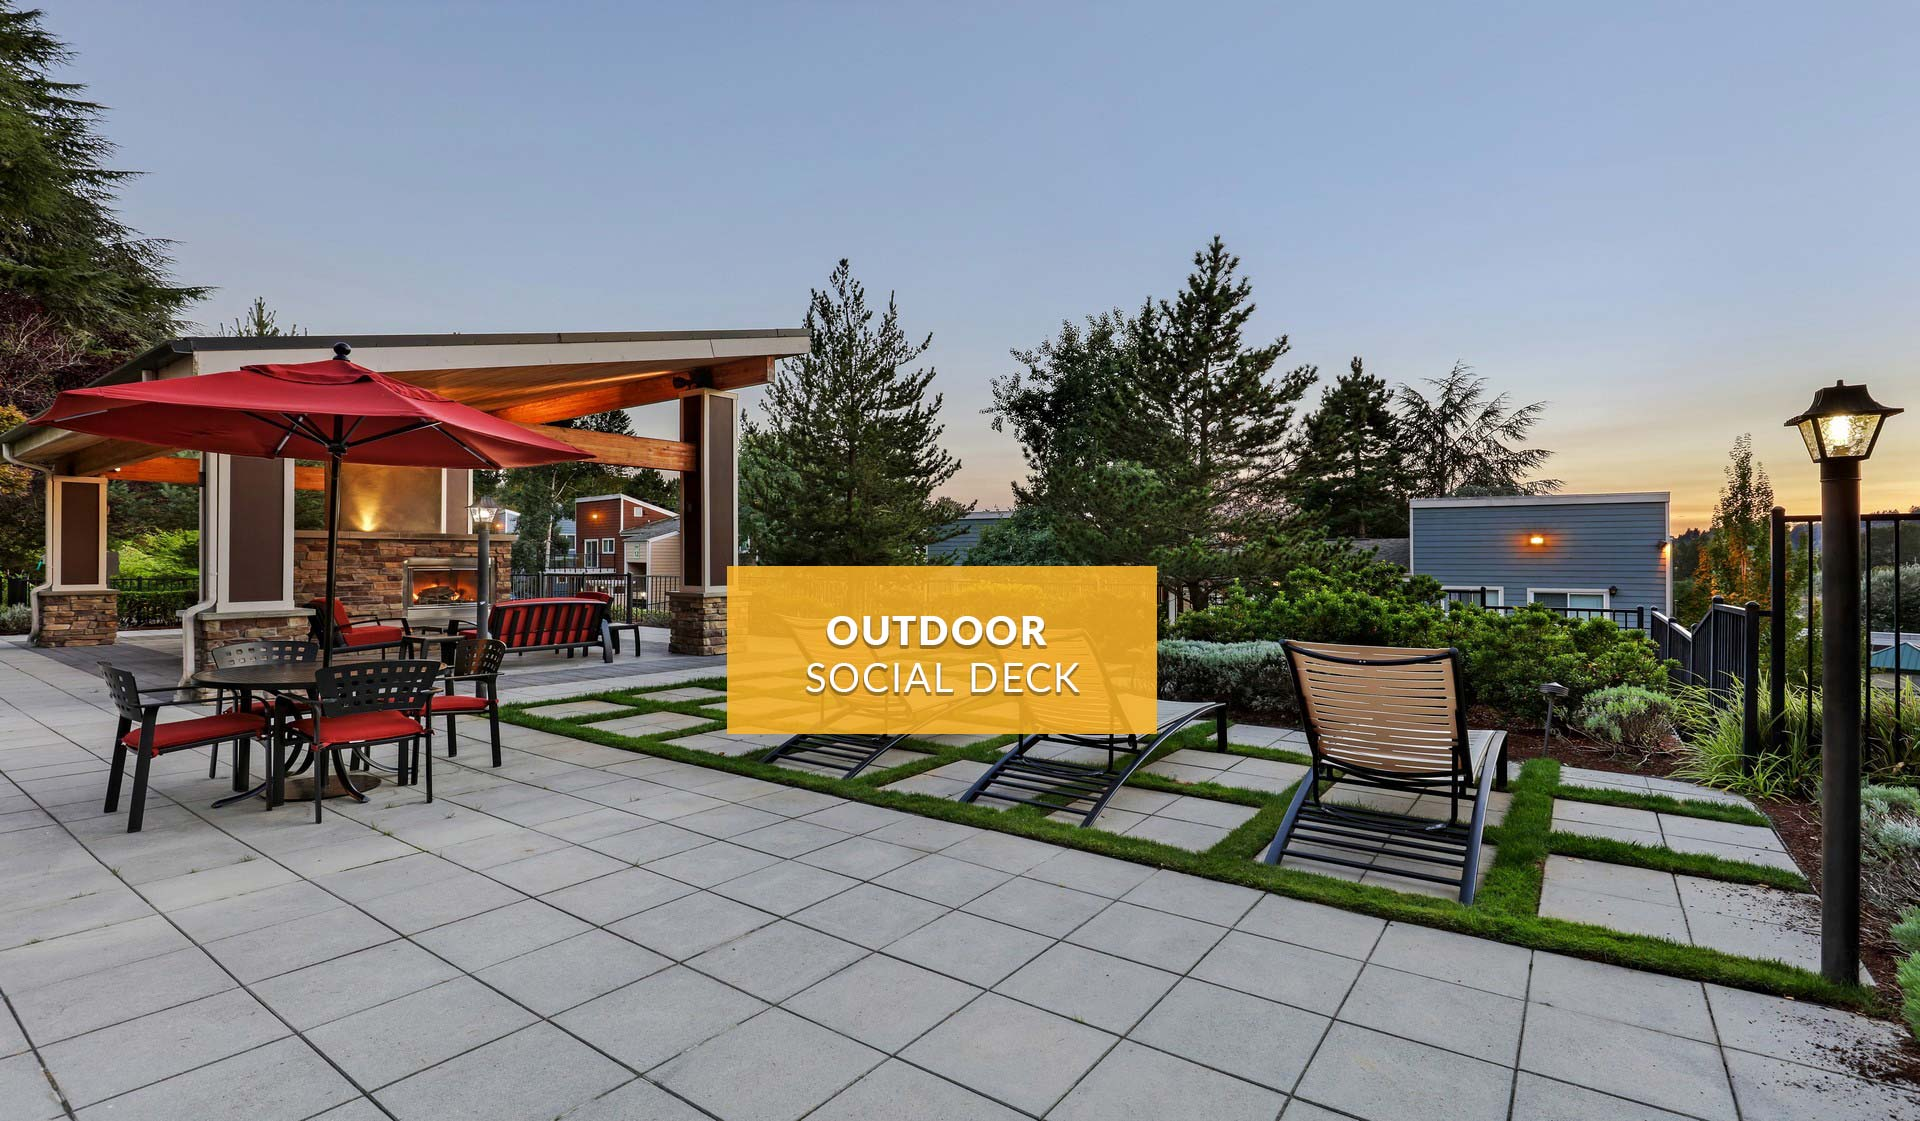 Cedar Rim Apartments - modern outdoor patio space with tables and chairs - newcastle, washington